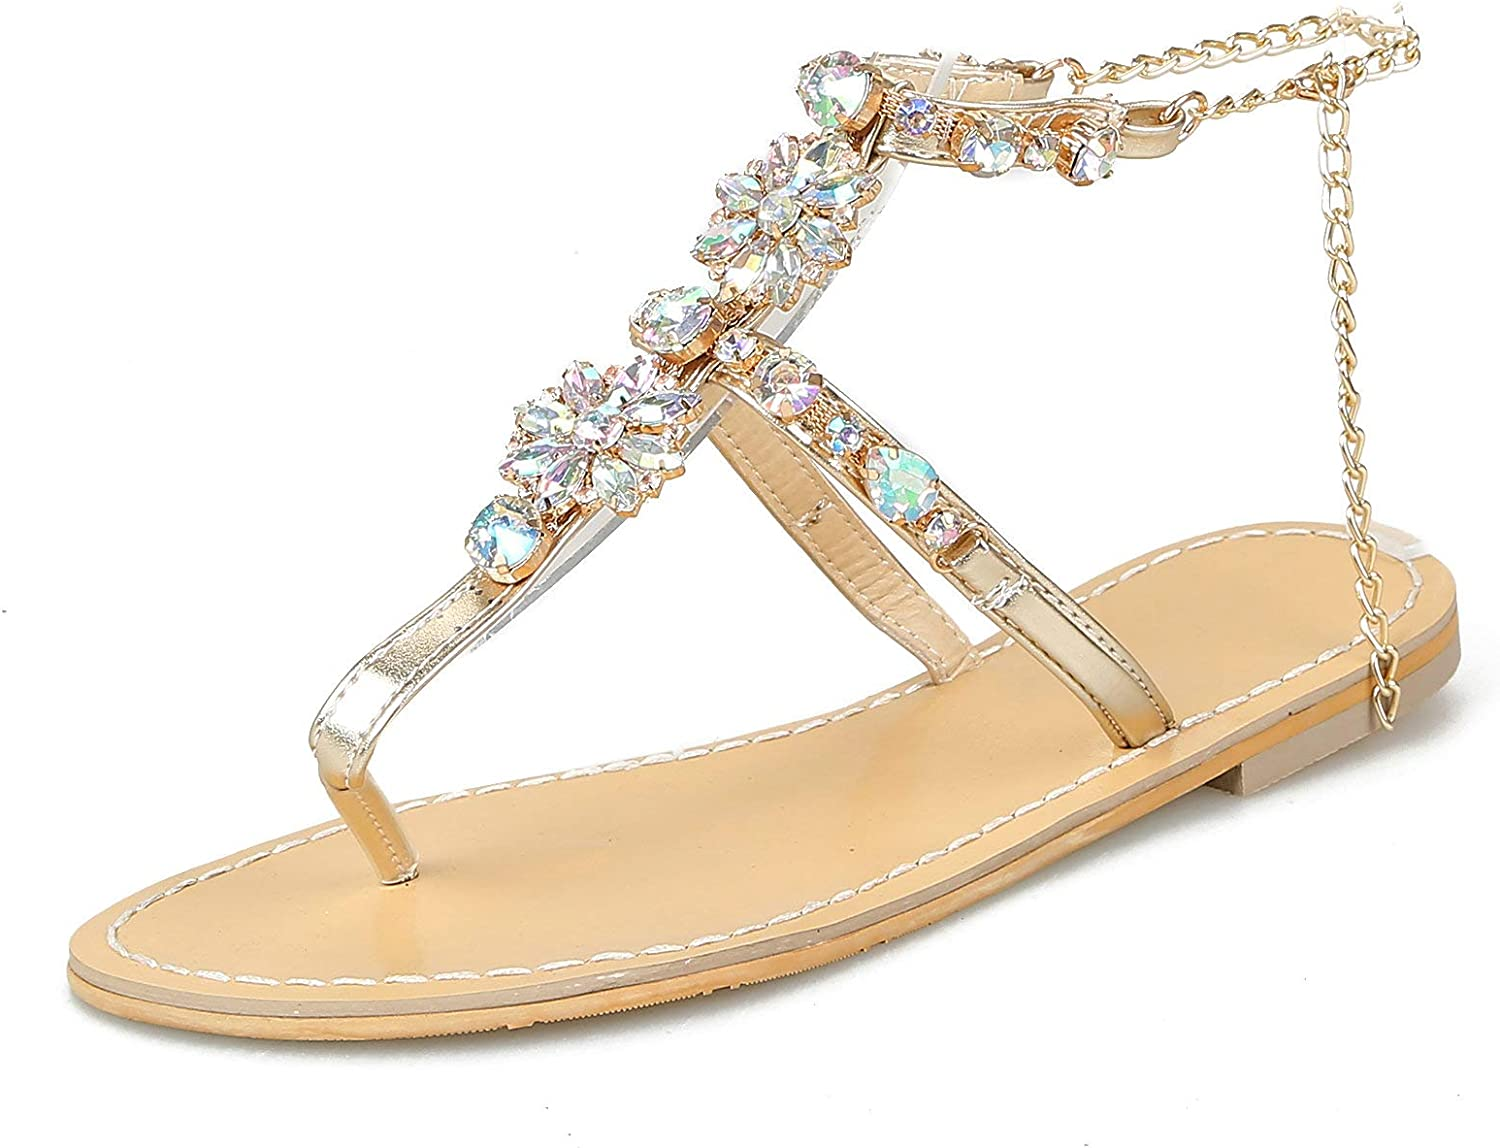 Thong Flats Sandals Women Ankle Strap Rhinestone Flip Flops Metal Chain Slingback T-Strap Summer Outdoor Casual Beach Walking shoes gold Silver